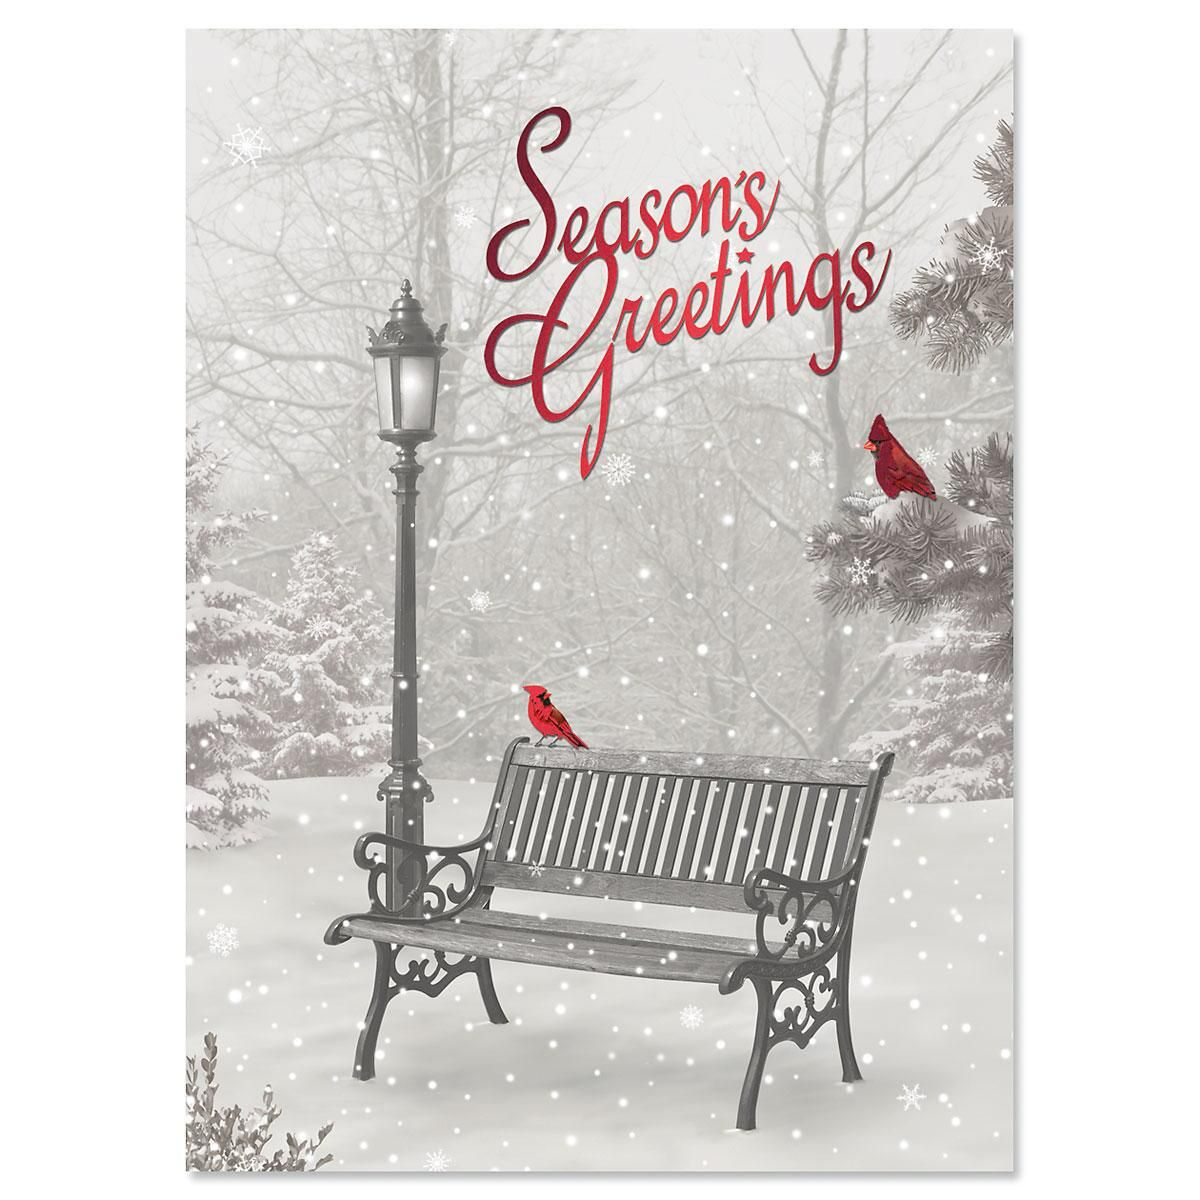 Snowfall Nonpersonalized Christmas Cards - Set of 14